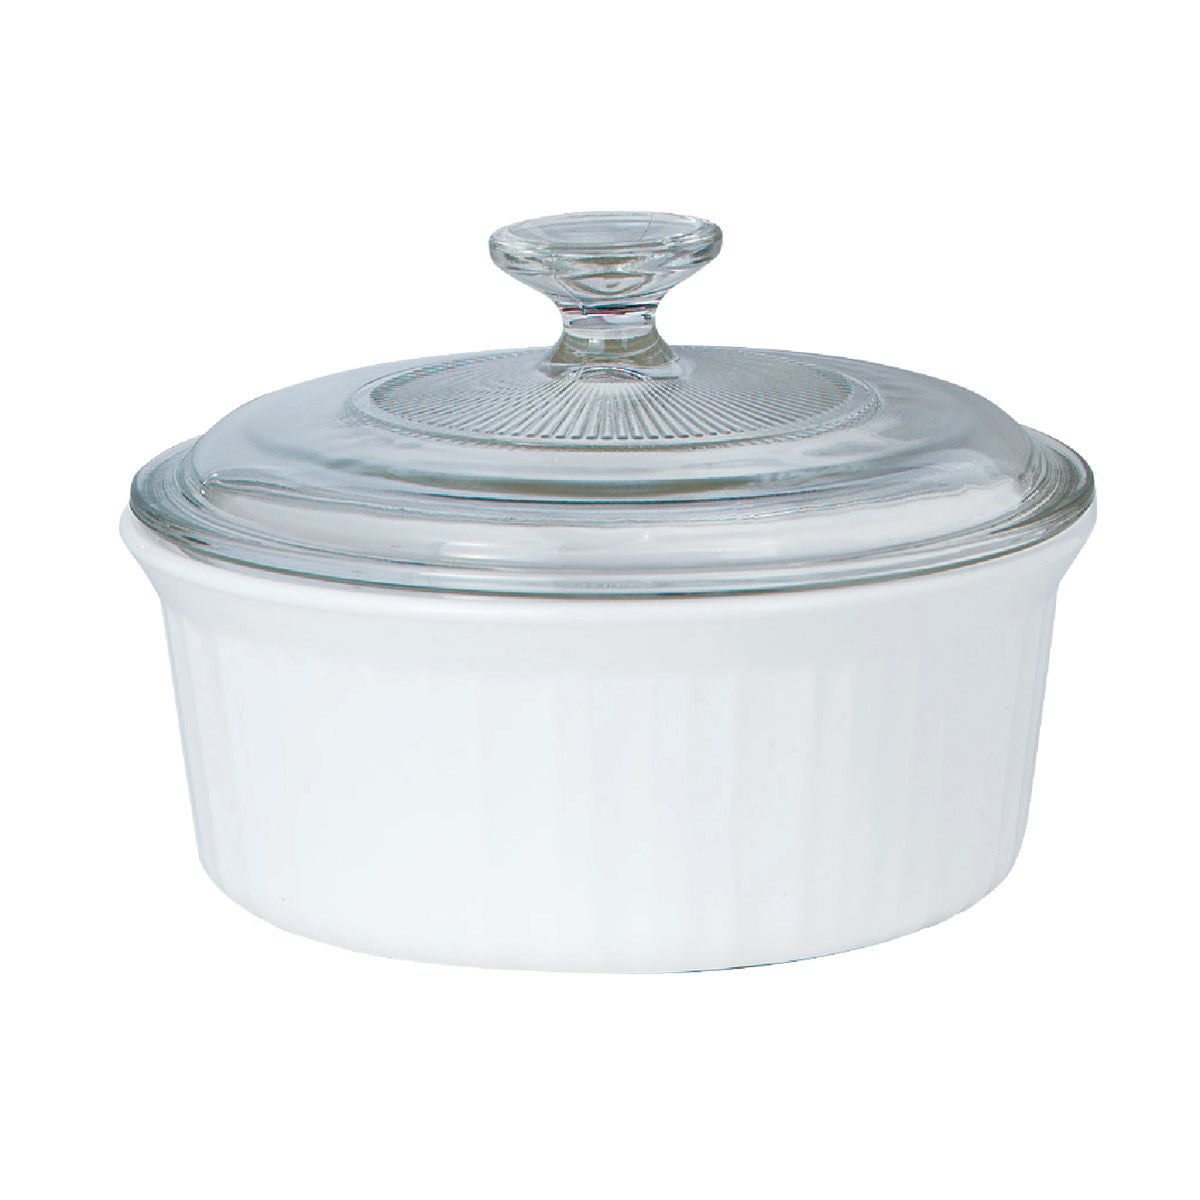 ROUND COVERED CASSEROLE - 1105932 by World Kitchen  Ekco